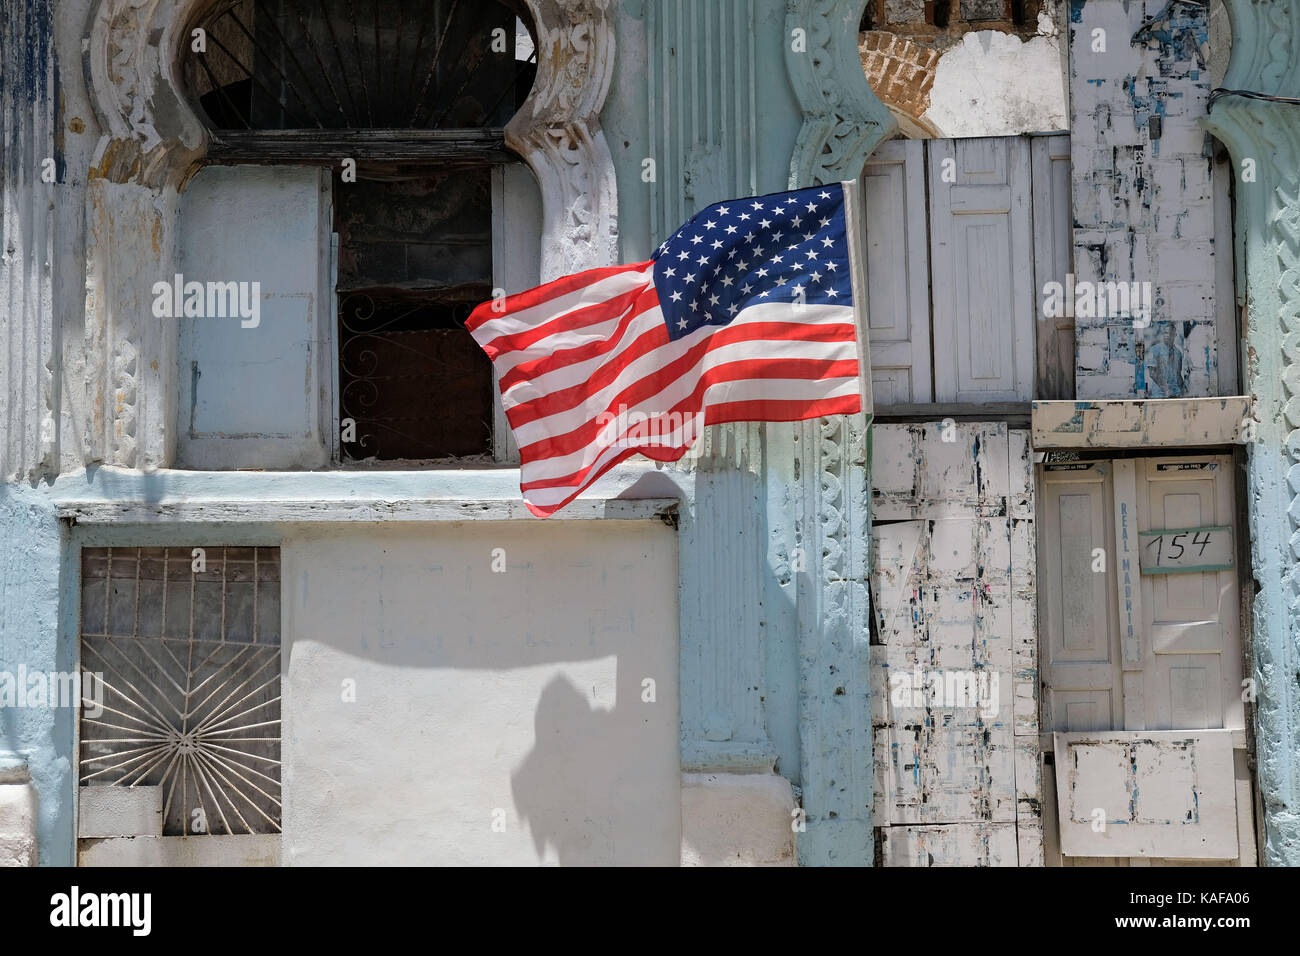 A United States flag flies outside a decrepit building in Centro Habana in Havana, Cuba. - Stock Image